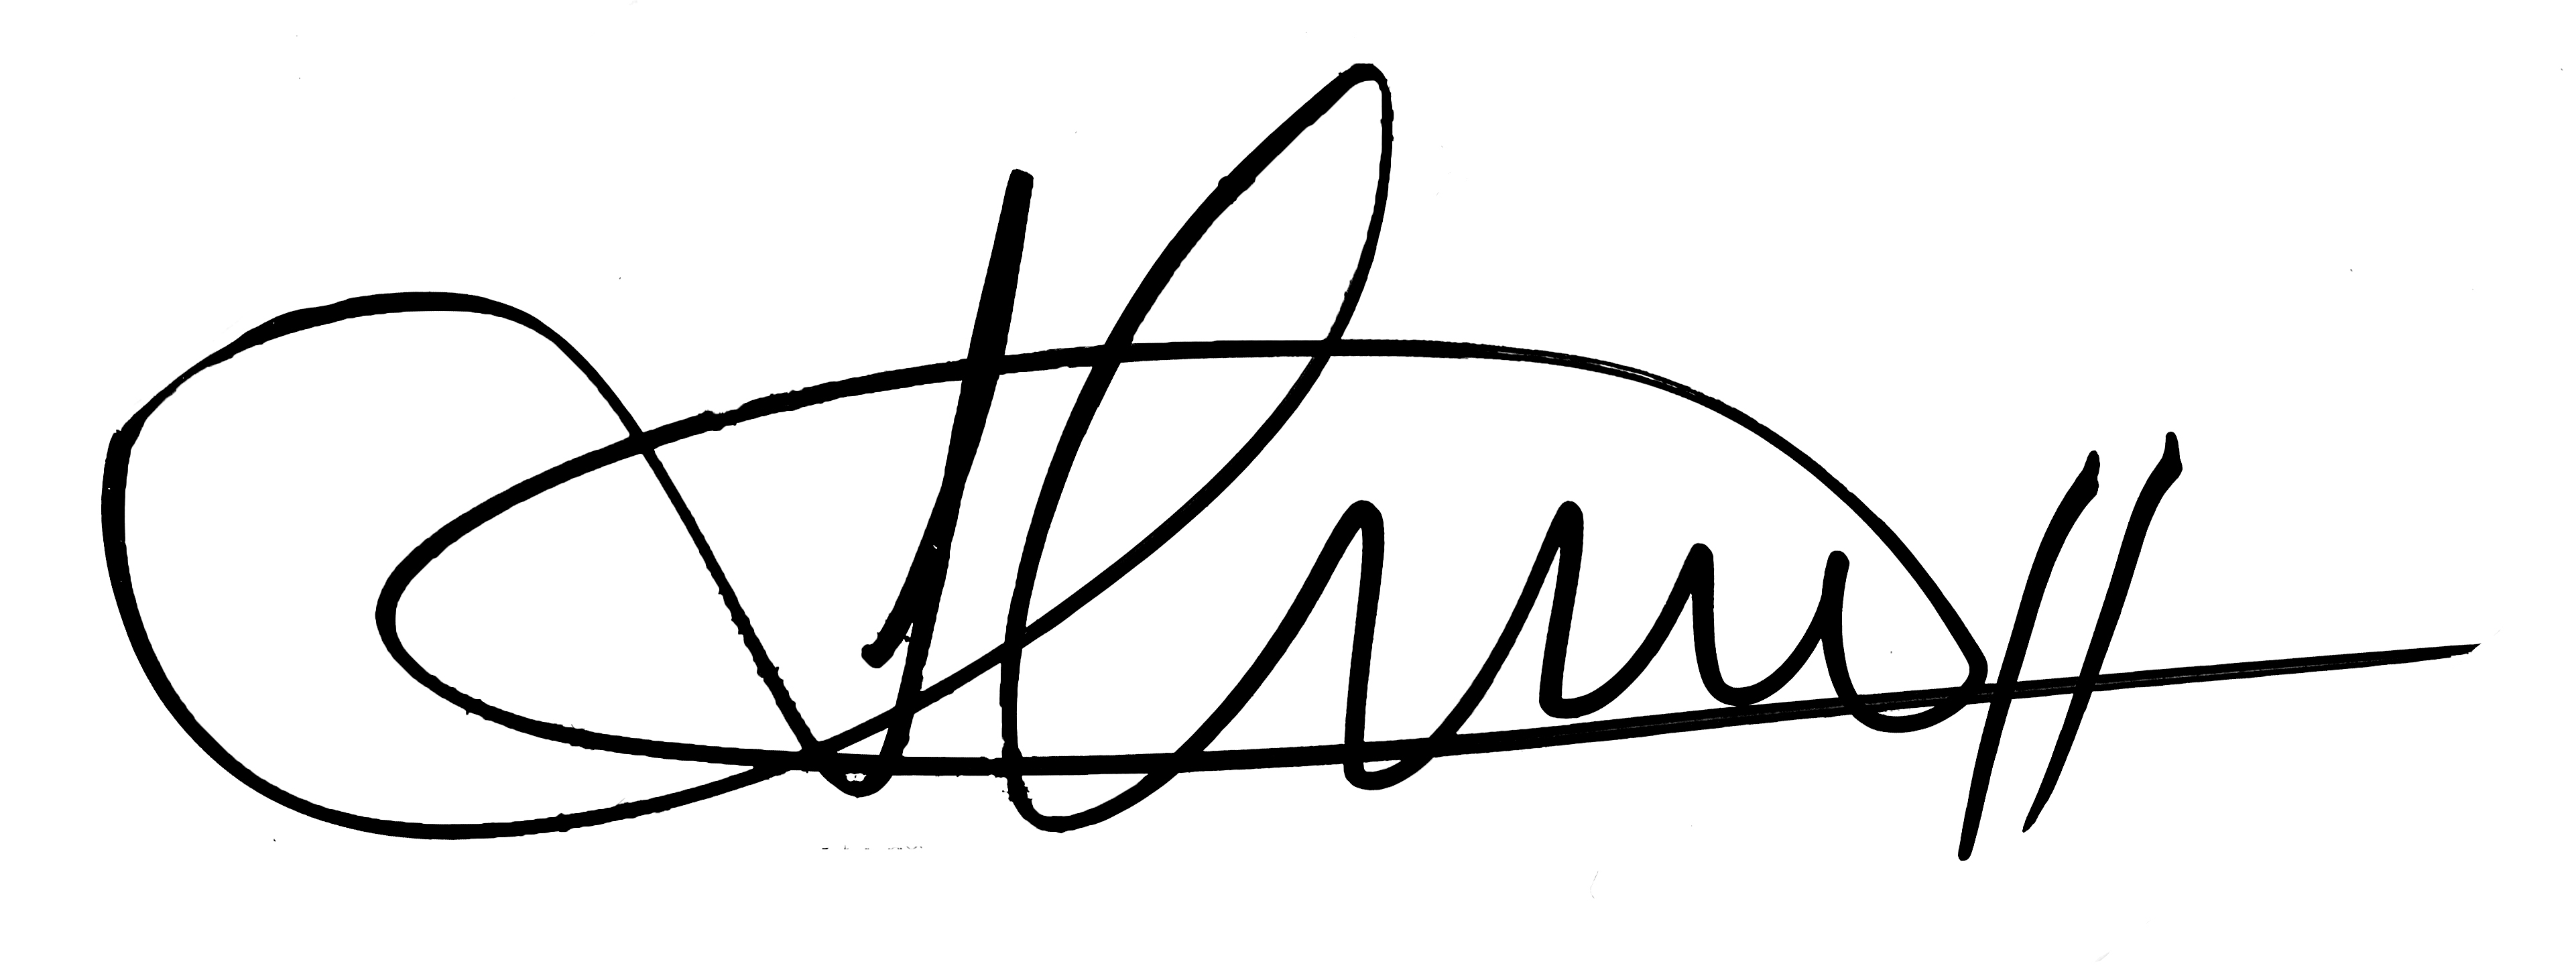 Best Signature For My Name  hellosigncom